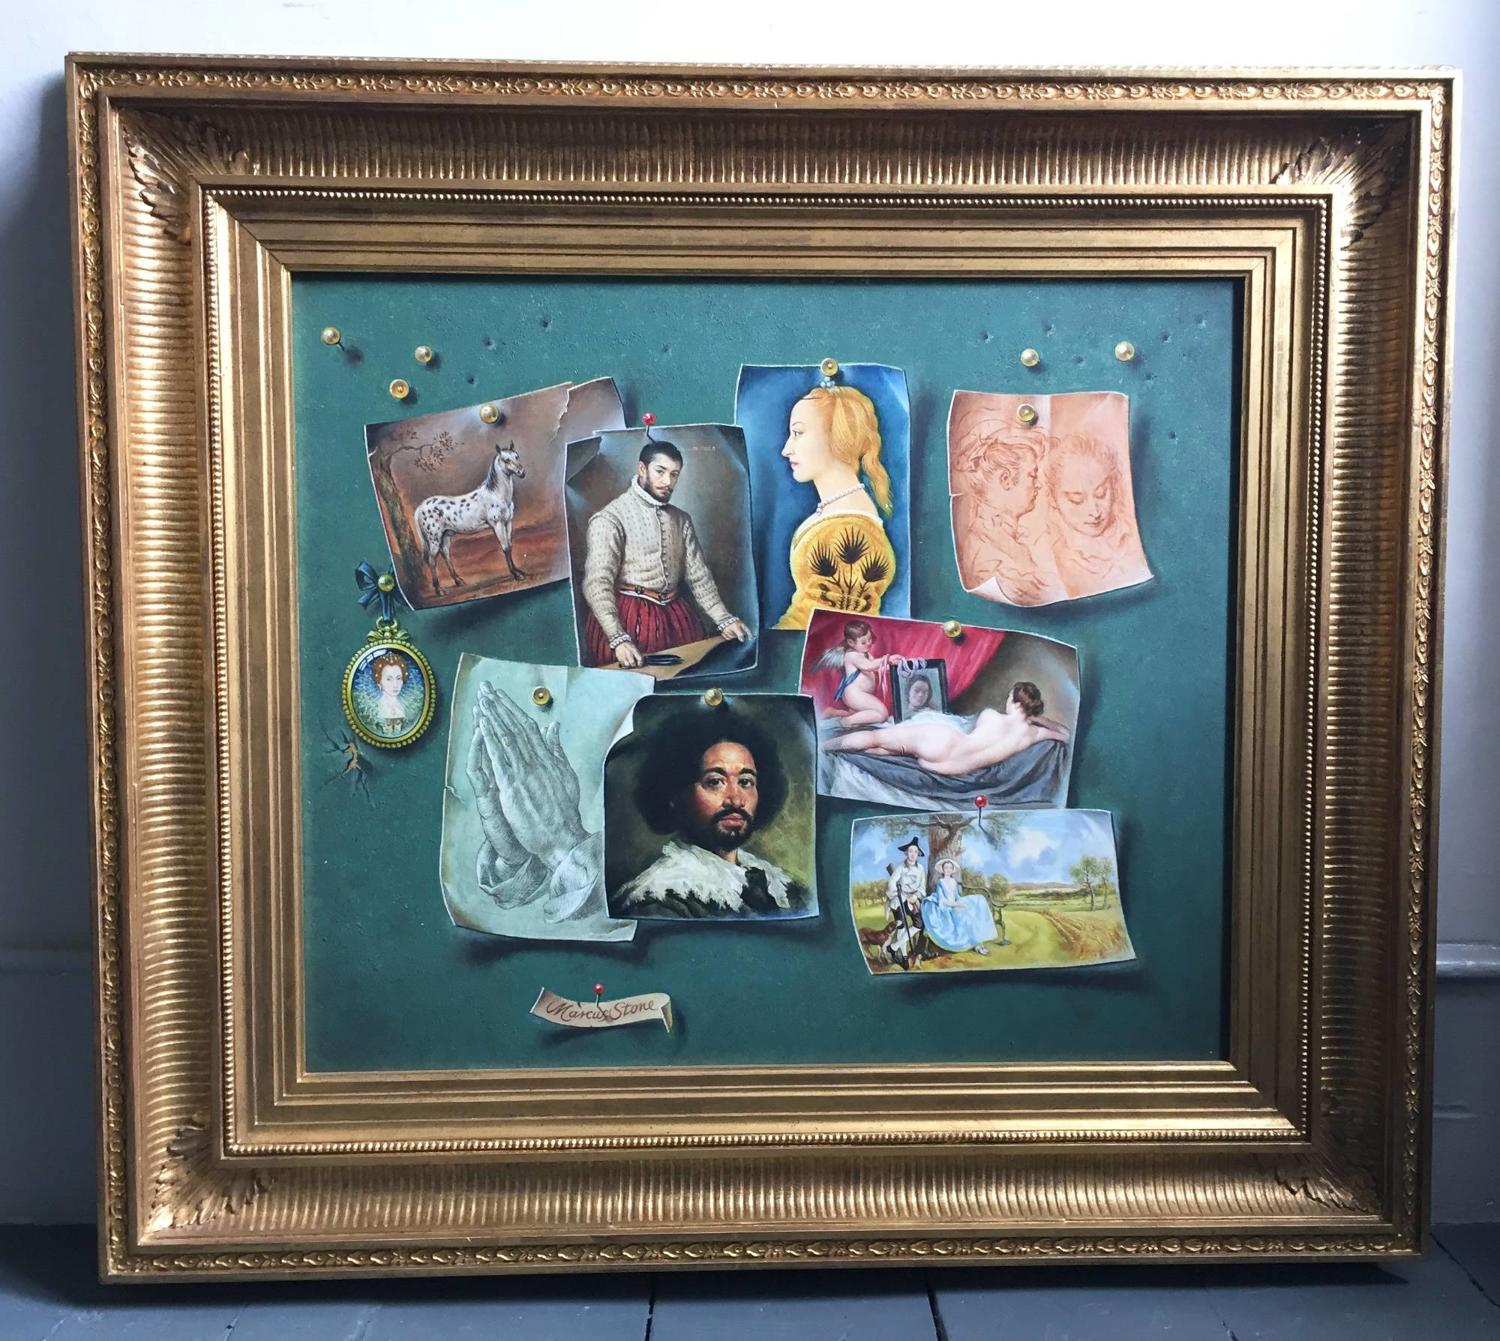 Marcus Stone Trompe L'Oeil Painting of Old Masters  on a Pin Board